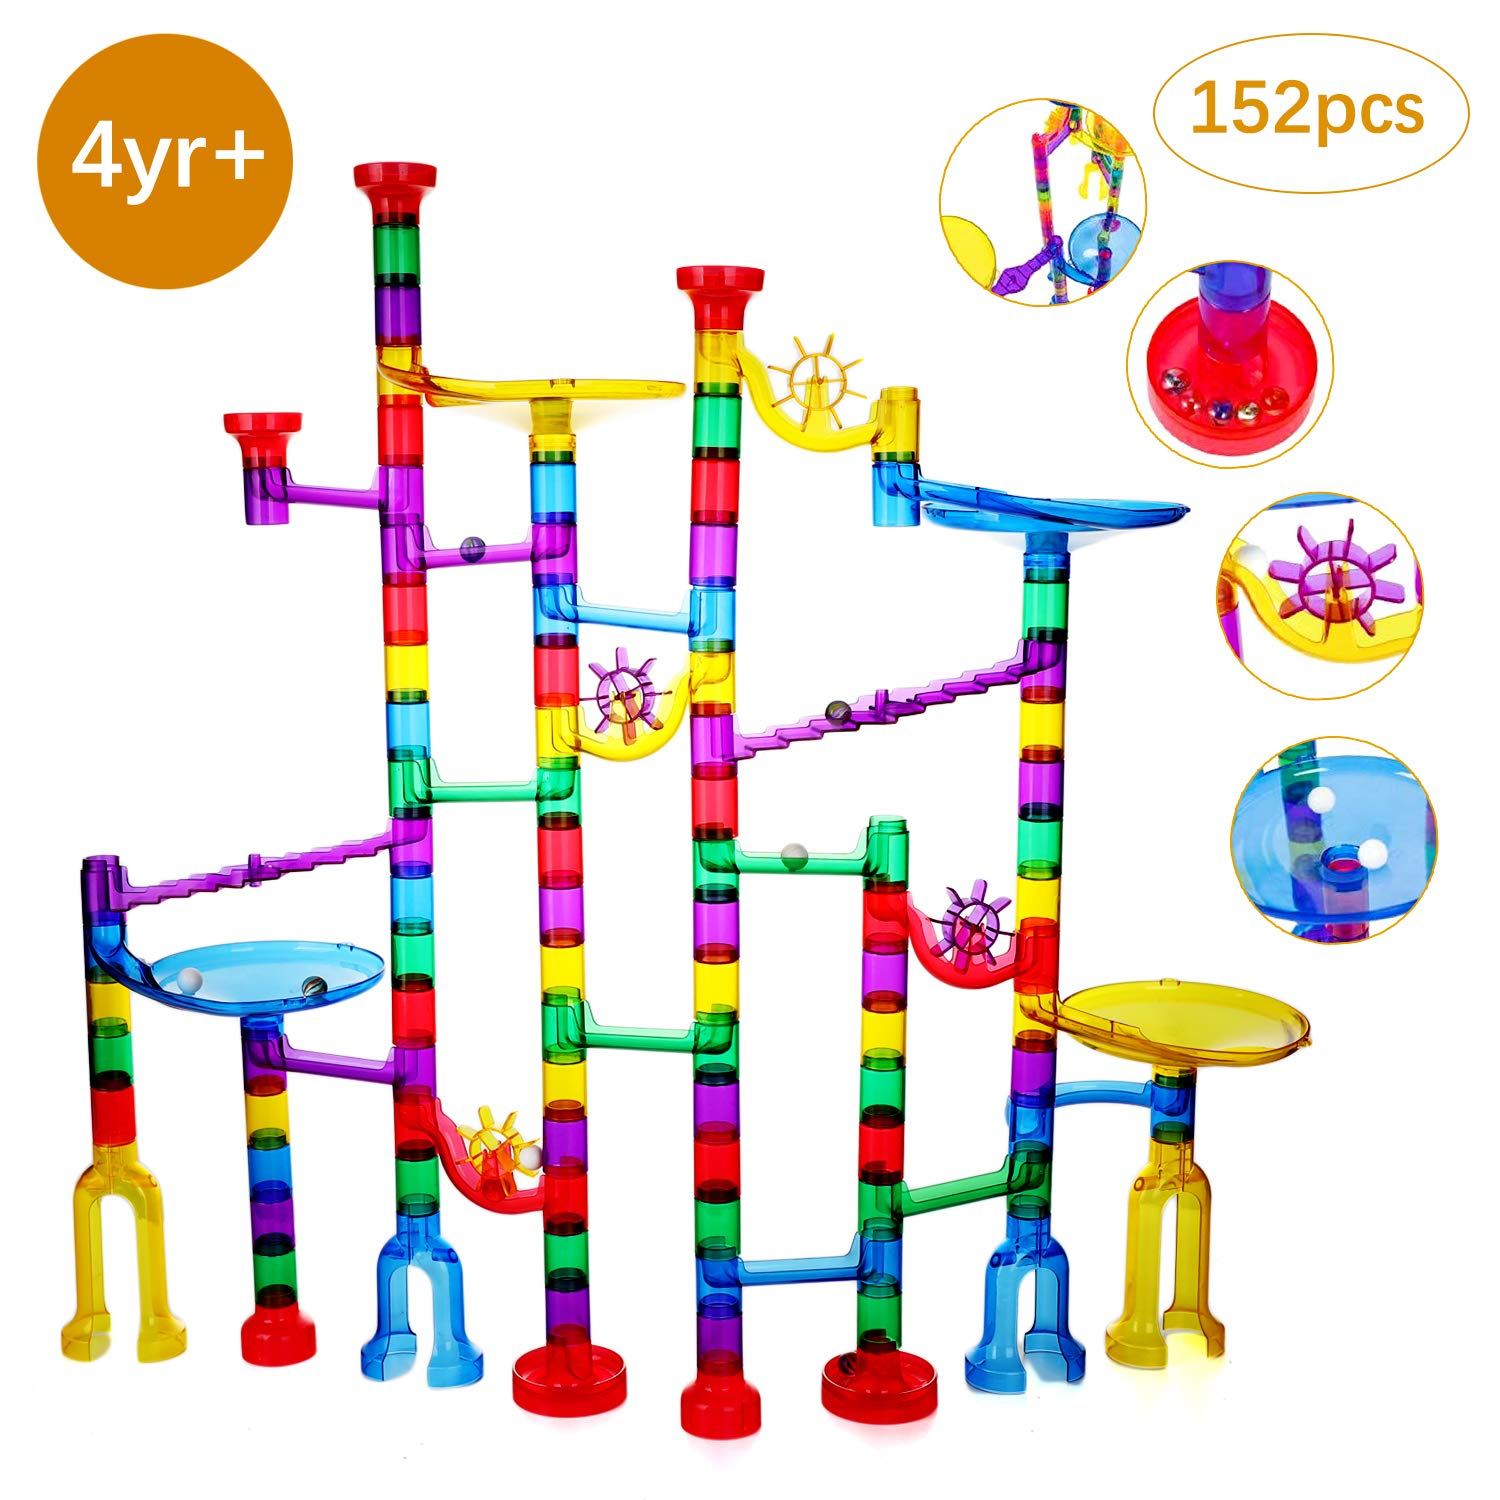 Ucradle Marble Run, 152 Pcs Marble Runs Toy Marble Maze Race Track Game Set, STEM Educational Learning Toy Construction Building Blocks for Kids 4 5 6 7+Years Old Boys and Girls (152pcs marble run)